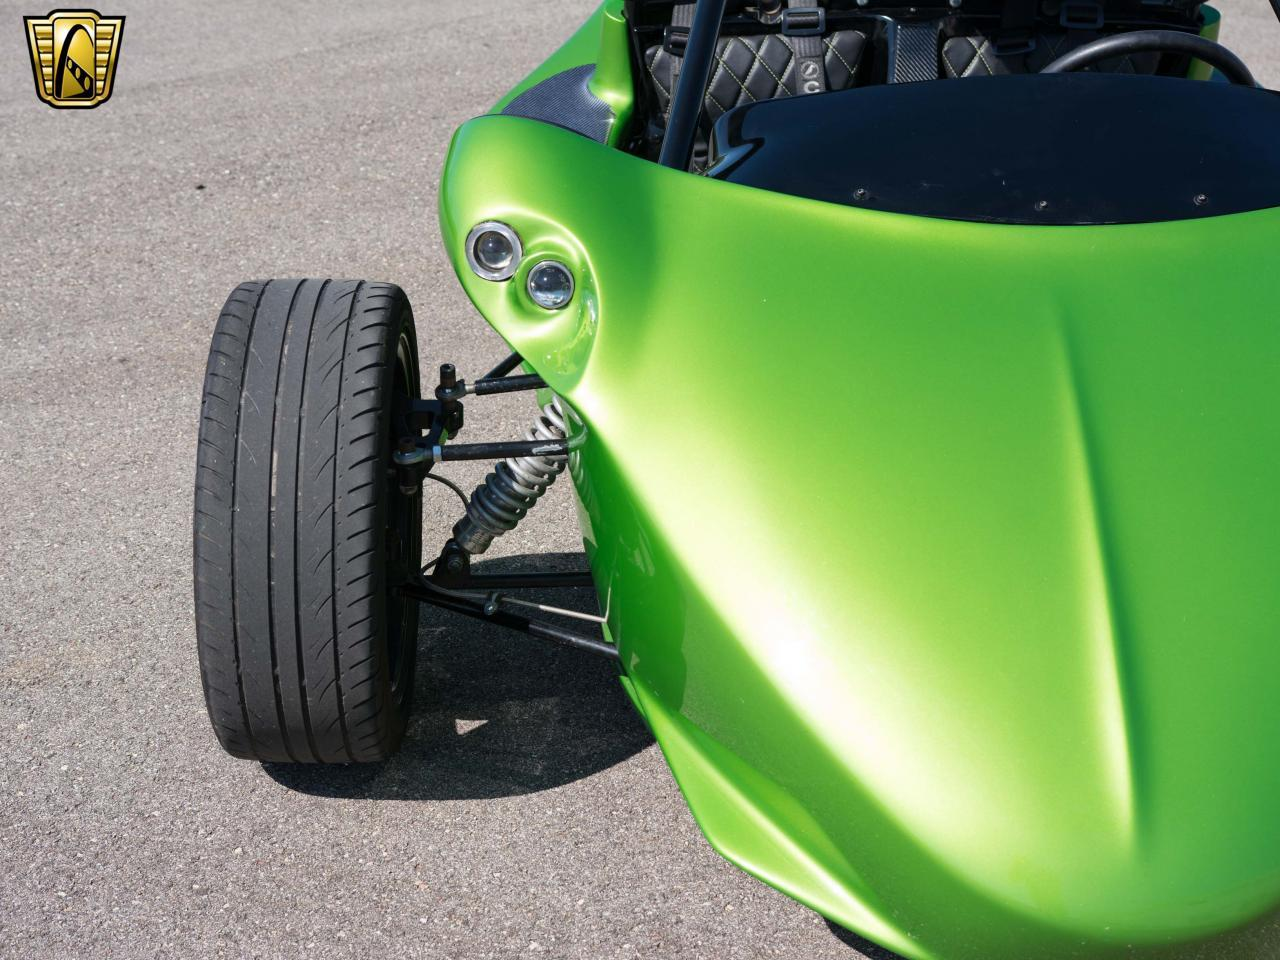 Large Picture of 2008 Kawasaki T-Rex Replica - $44,595.00 Offered by Gateway Classic Cars - Milwaukee - L7NA